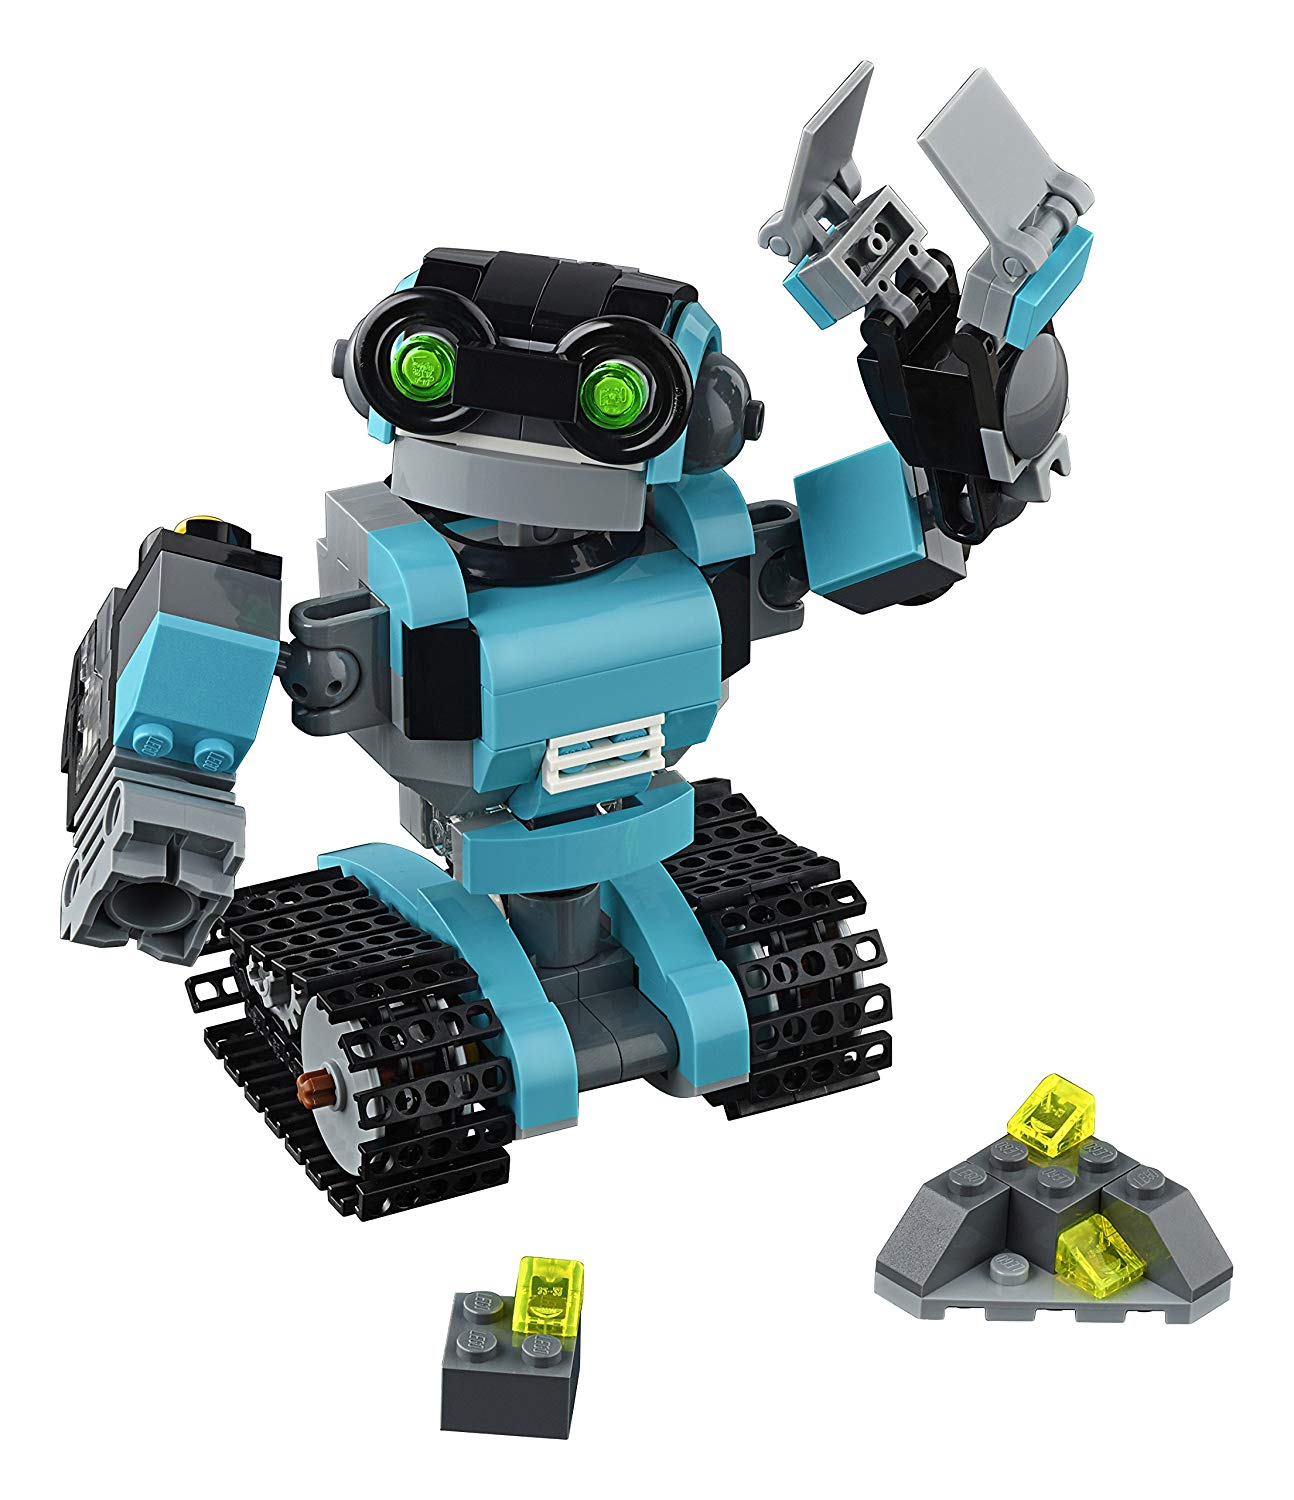 LEGO 31062 Toy Creator Robo Explorer Robot Kit